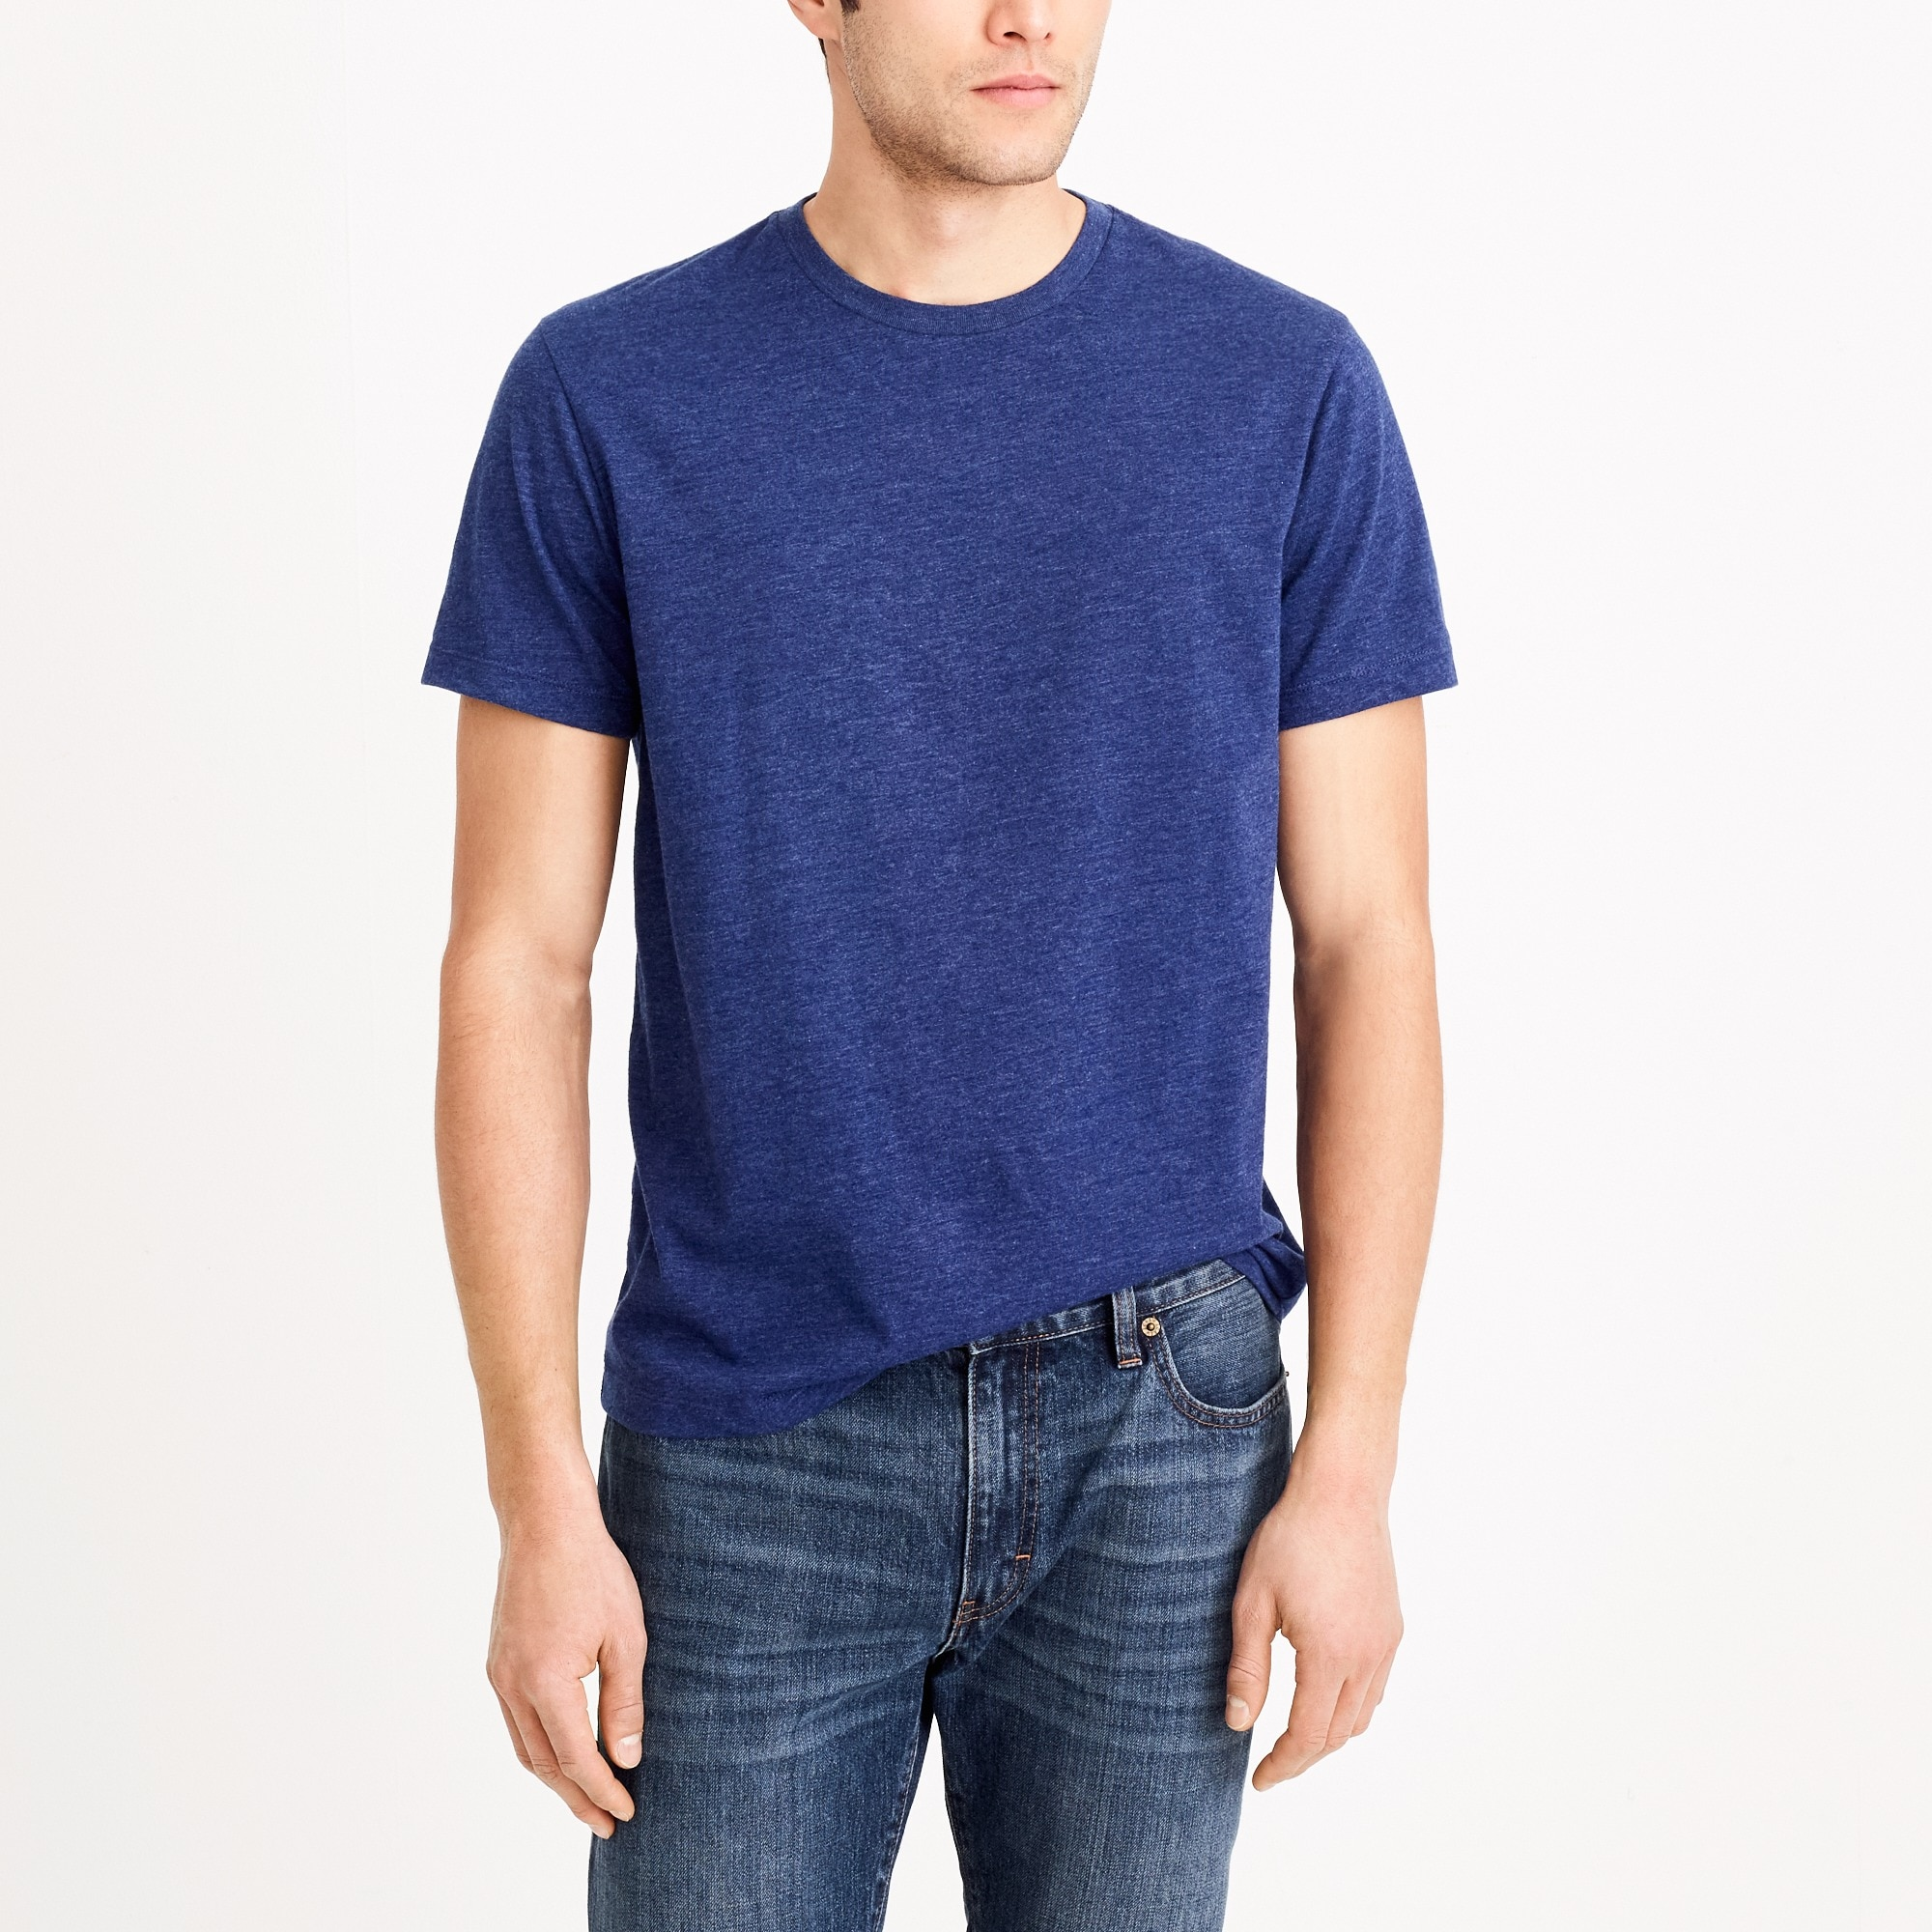 factory mens Heathered Broken-in T-shirt